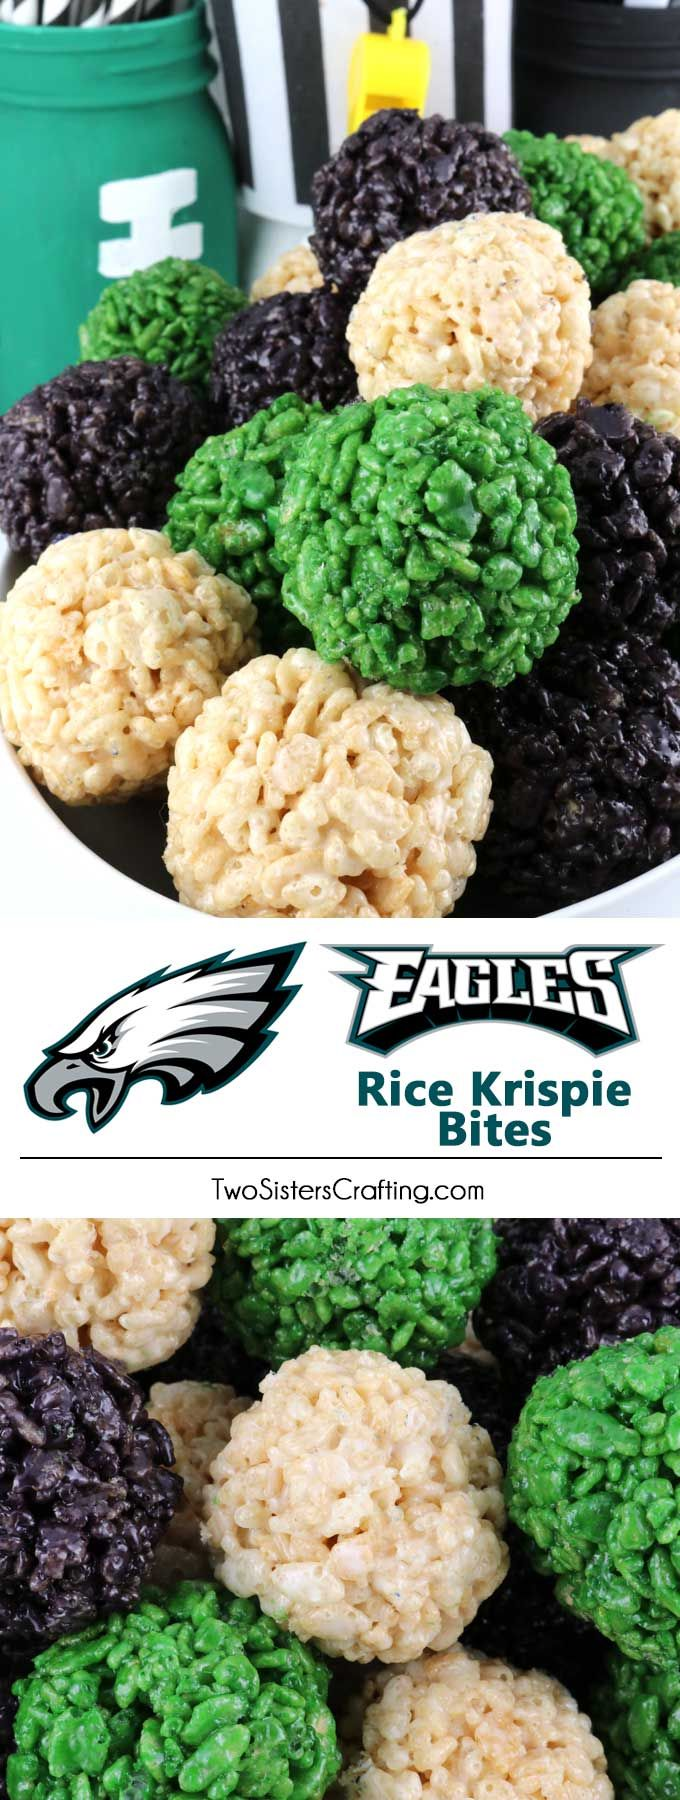 Philadelphia Eagles Rice Krispie Bites -  Yummy, bite-sized balls of crunchy, marshmallow-y delight.  These colorful and festive Philadelphia Eagles Treats are great for a game day football party, an NFL playoff party, a Super Bowl party or as a special snack for the Philadelphia Eagles fans in your life. Go Eagles!  Follow us for more fun Super Bowl Food Ideas. #eagles #philadelphiaeagles #superbowlparty #superbowlfood #philadelphiaeaglesfood via @2SistersCraft